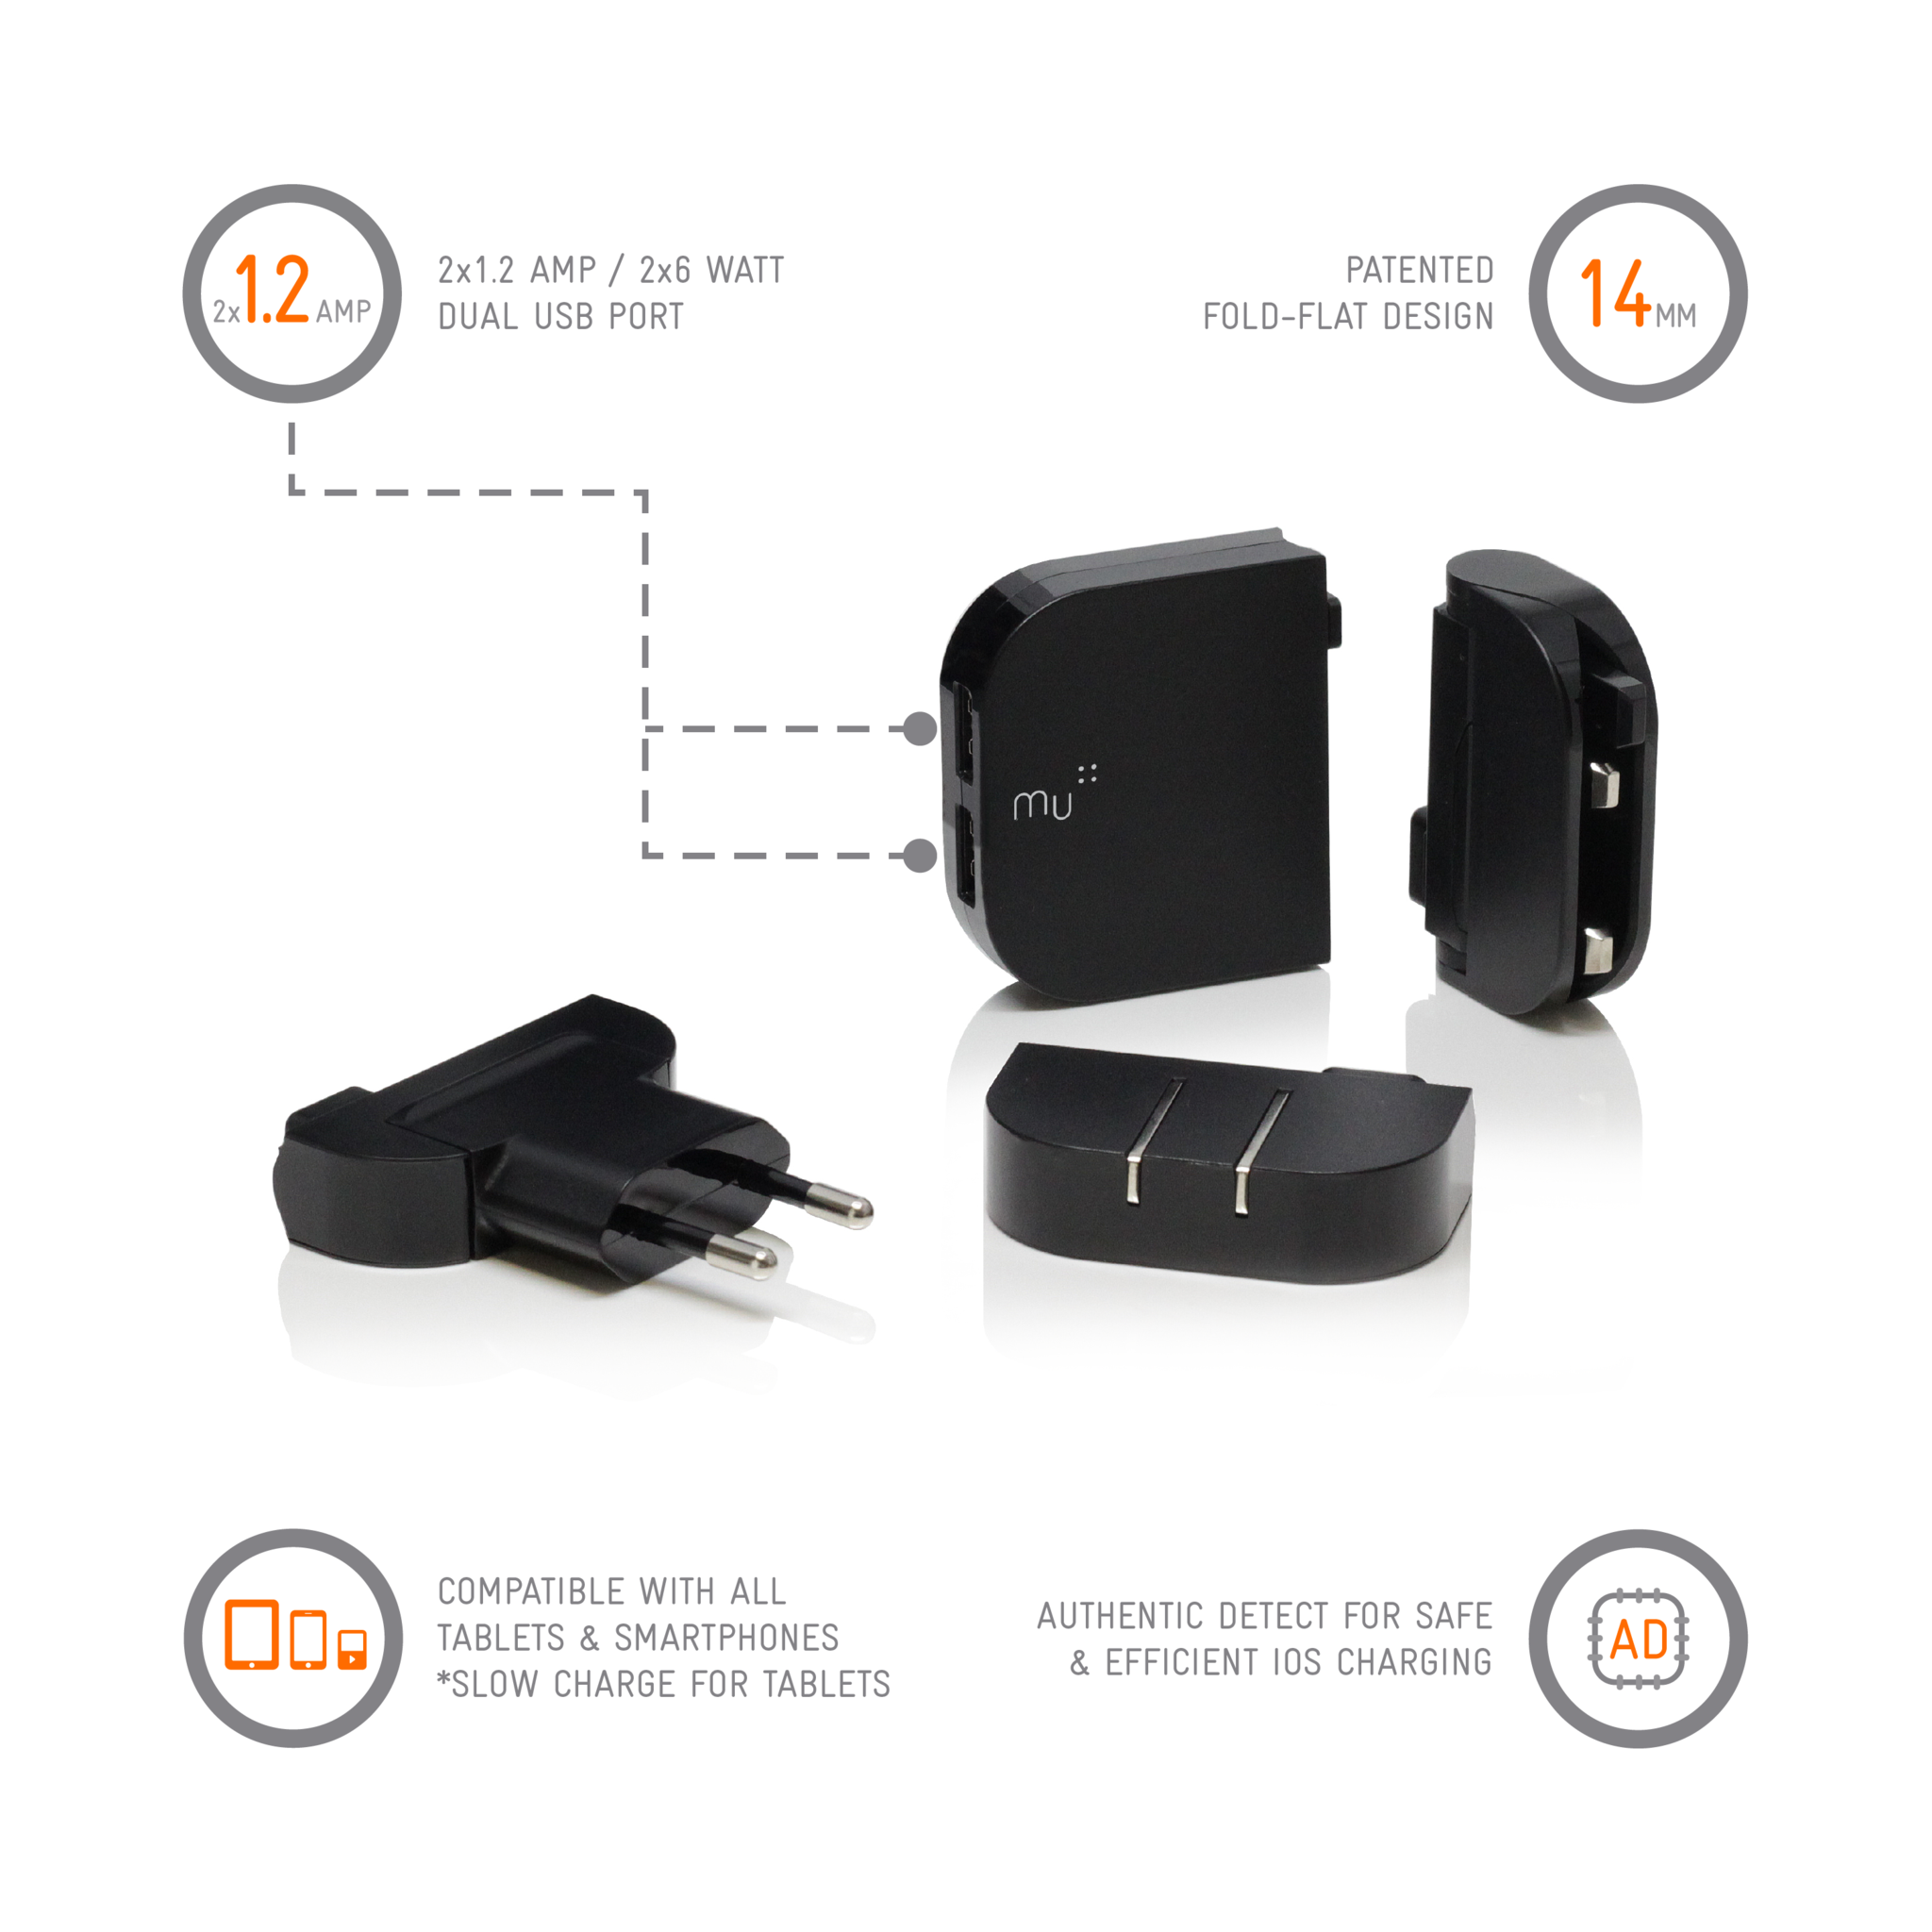 The Folding Plug Mu Wiring Uk To Us Usb Charger Worldwide Traveller Duo Products In Black